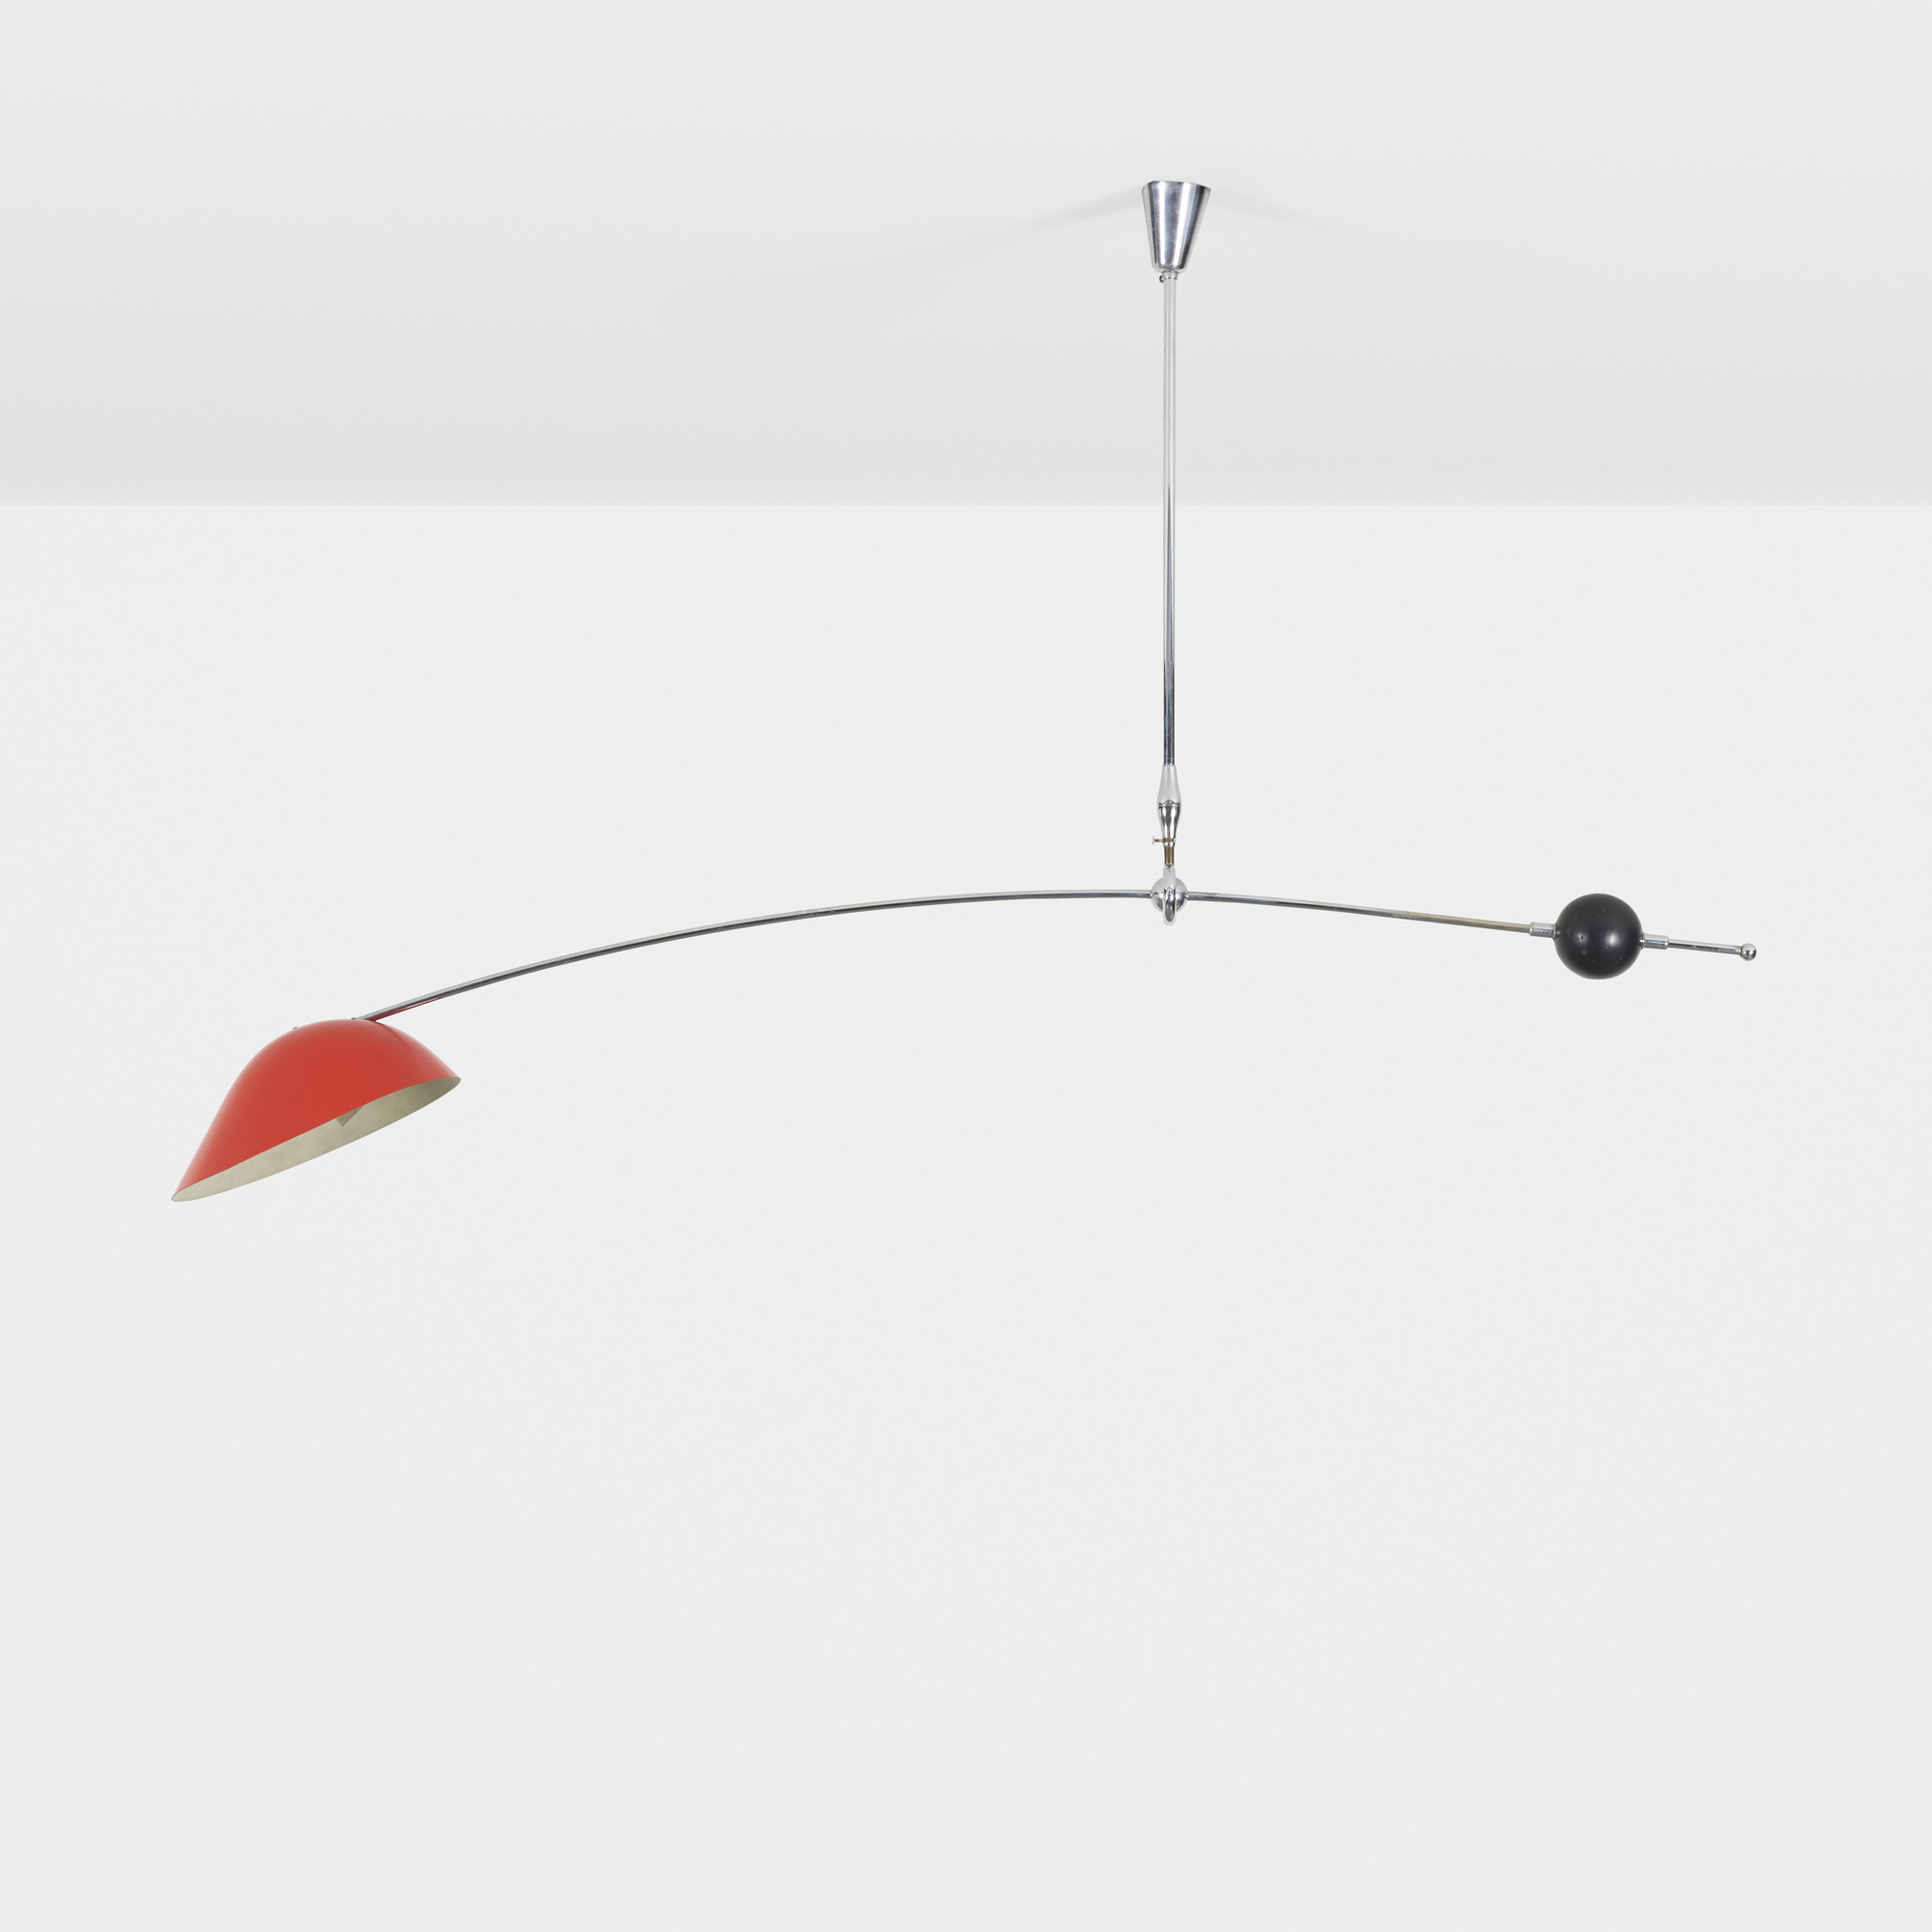 215: Angelo Lelii / counterbalance ceiling lamp (1 of 2)